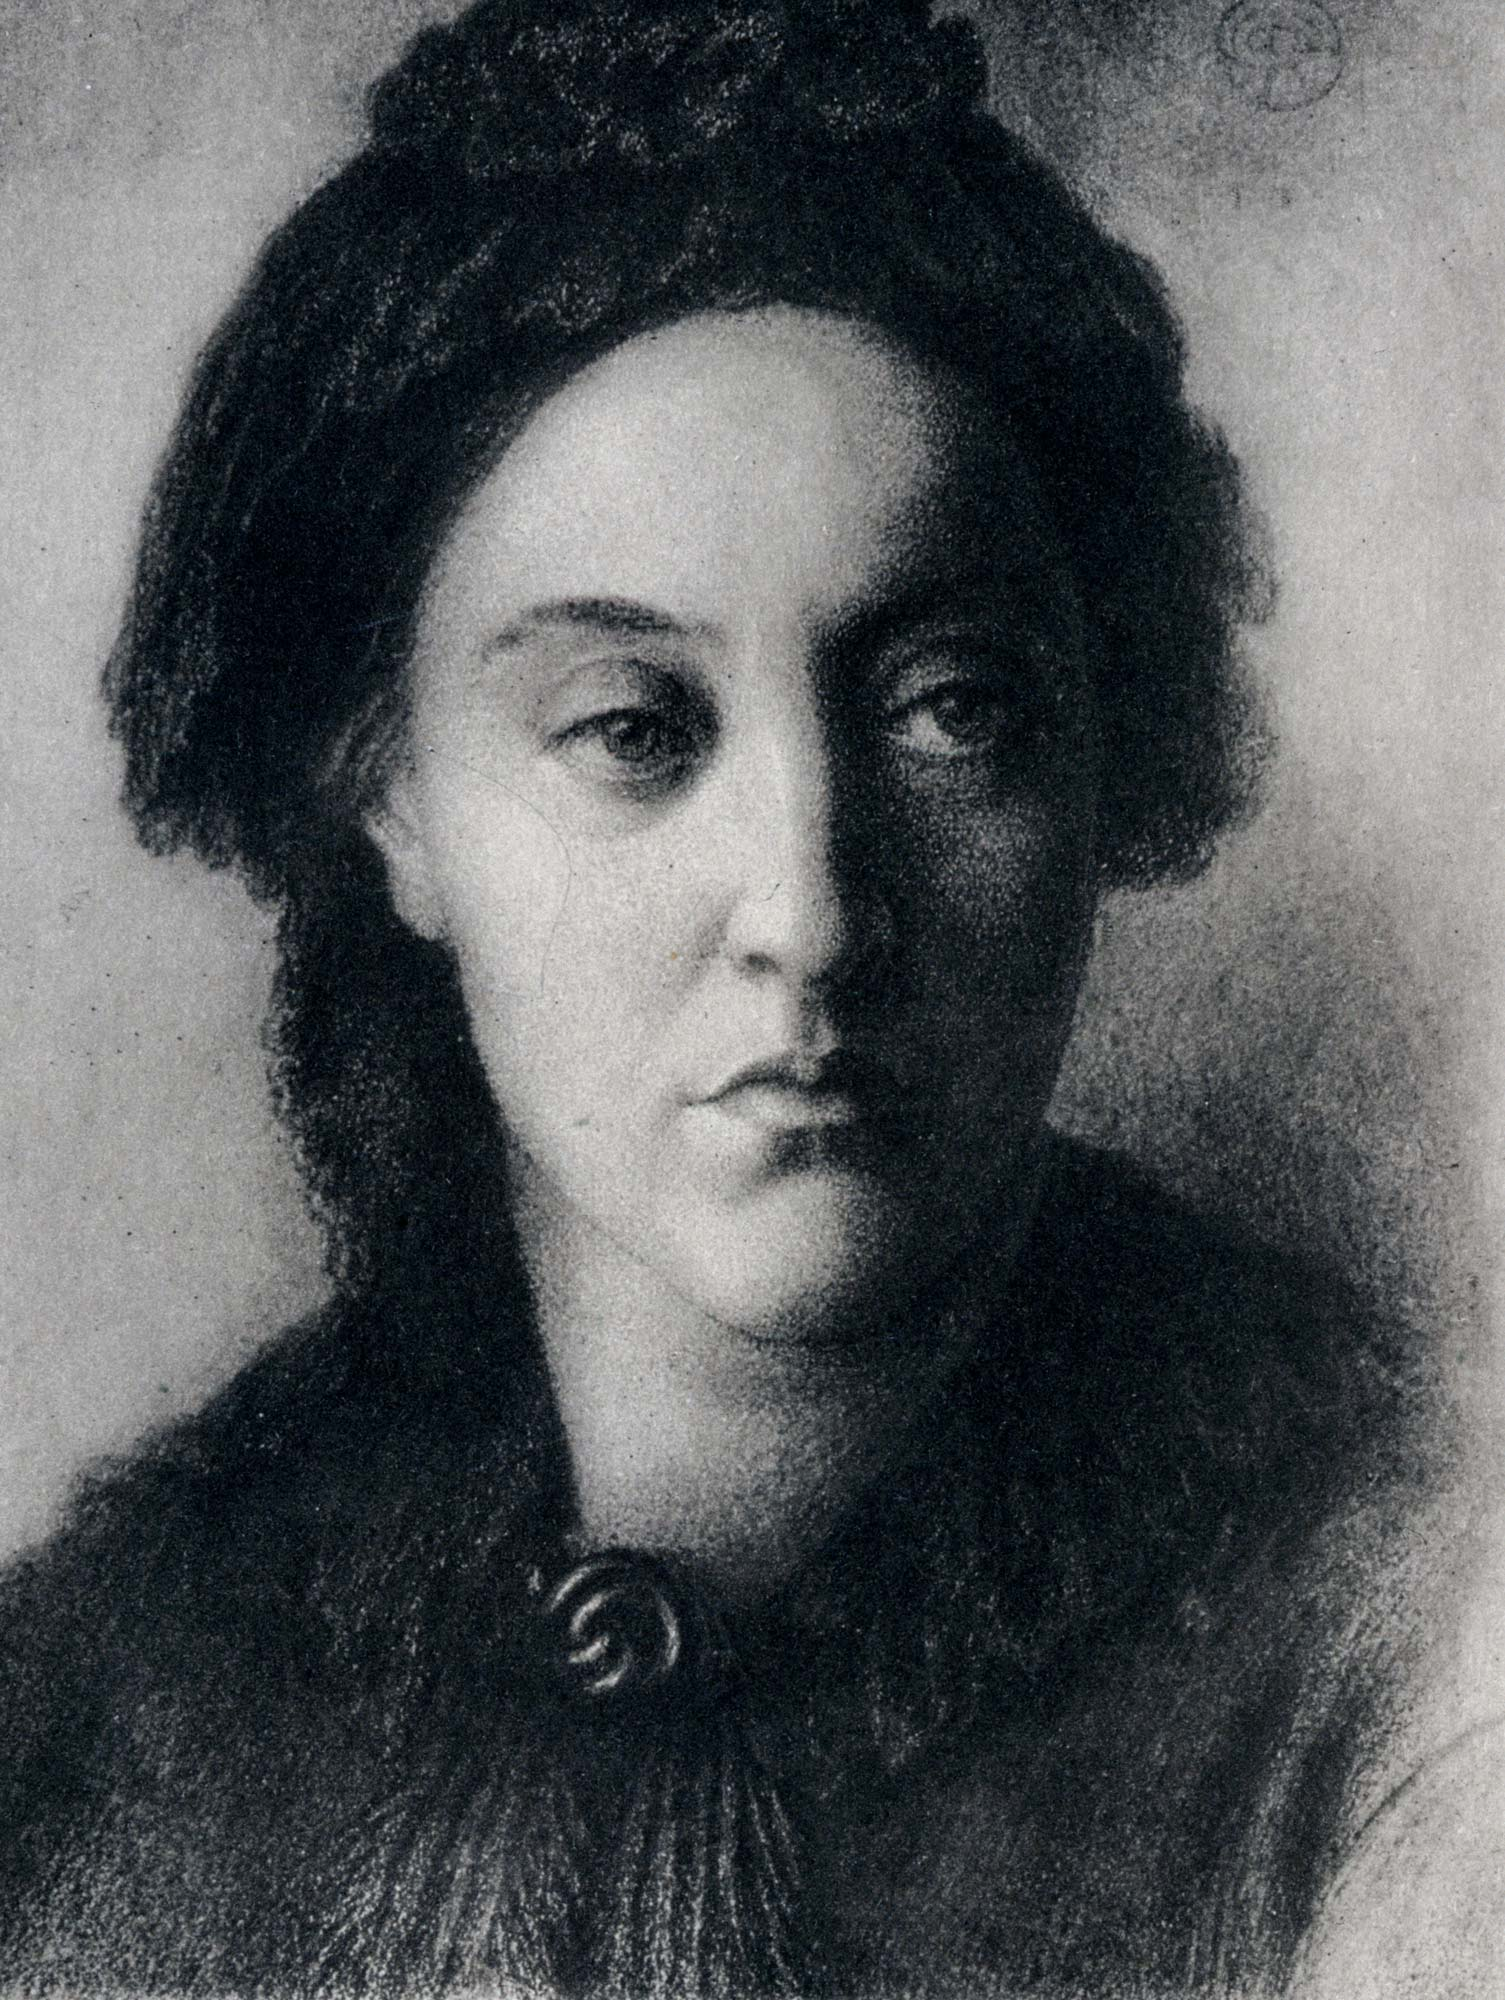 Christina Rossetti, author of 'Goblin Market', 'In The Bleak Midwinter' and 'Remember'. Drawing by Dante Rossetti.